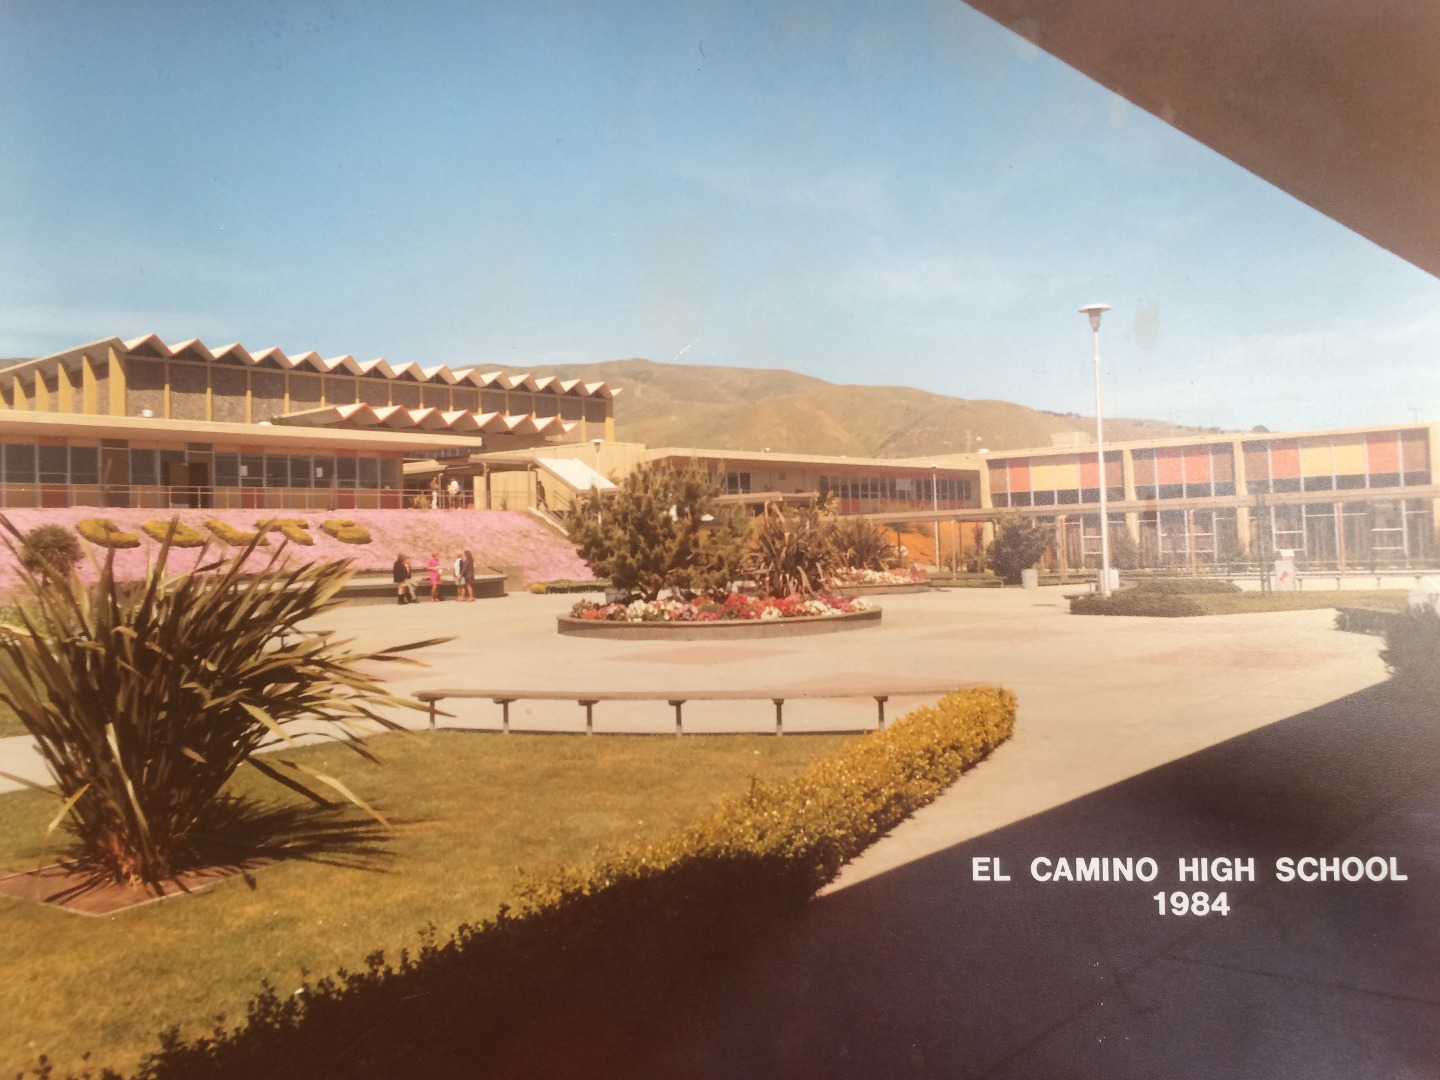 El Camino High School